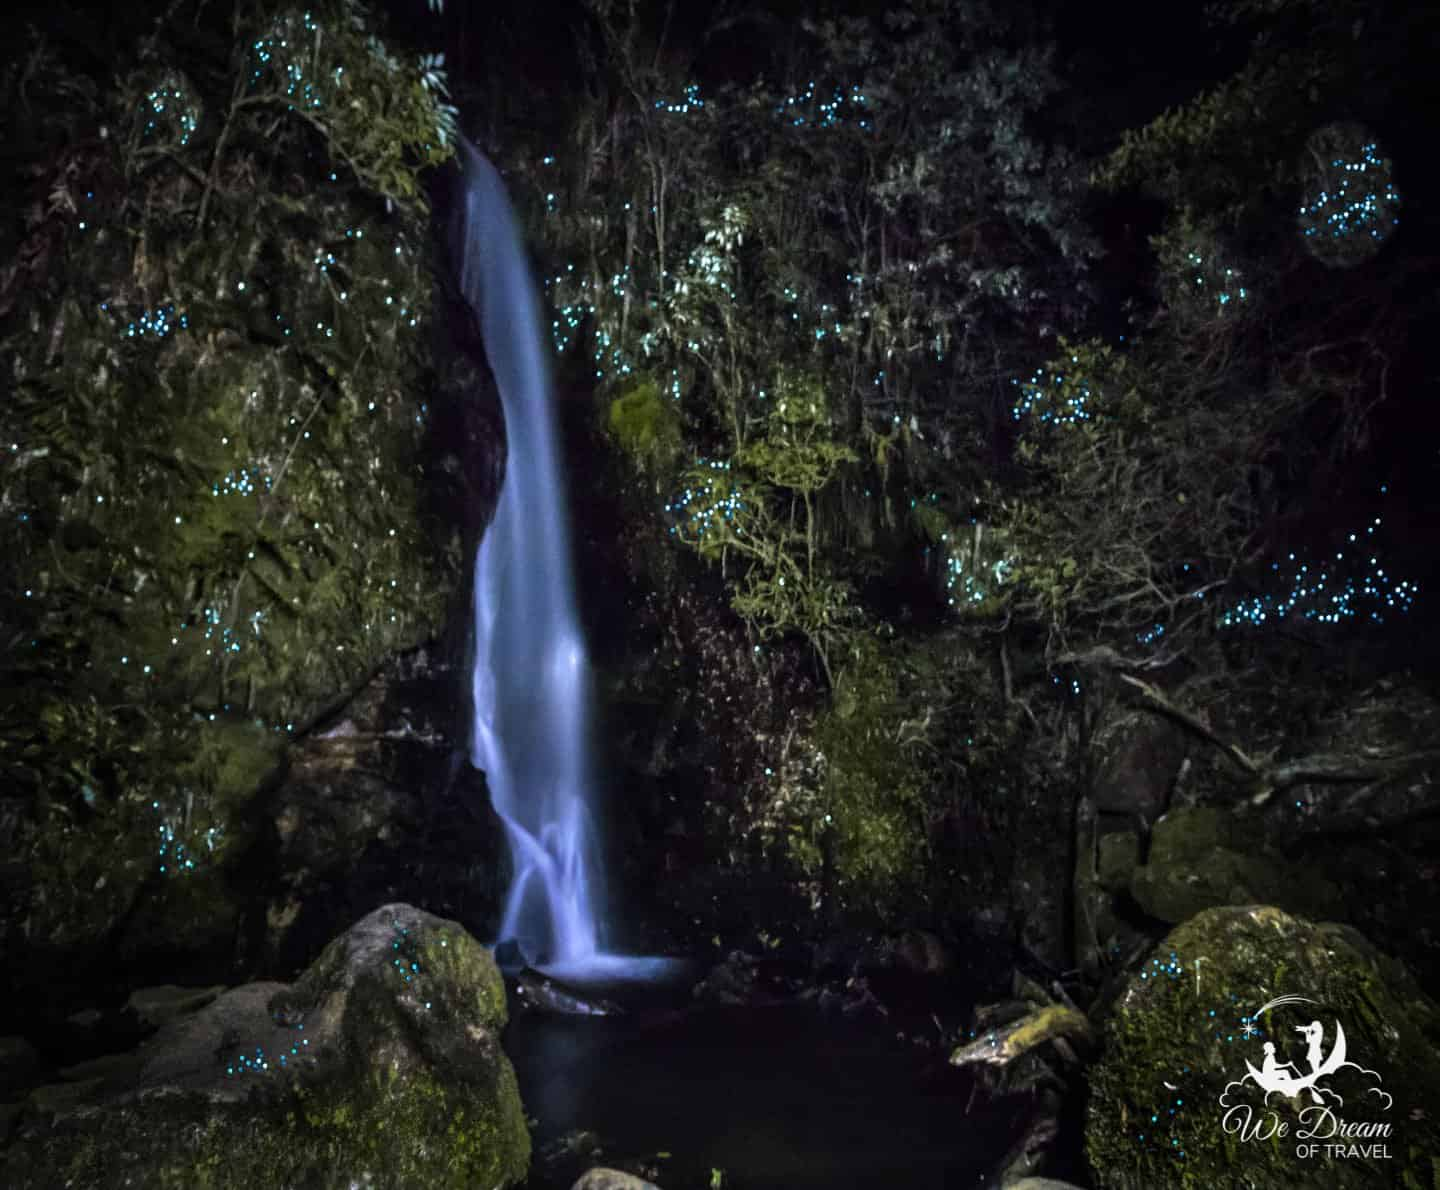 Glow worms surround a small but beautiful waterfall in McLaren Park in New Zealand.